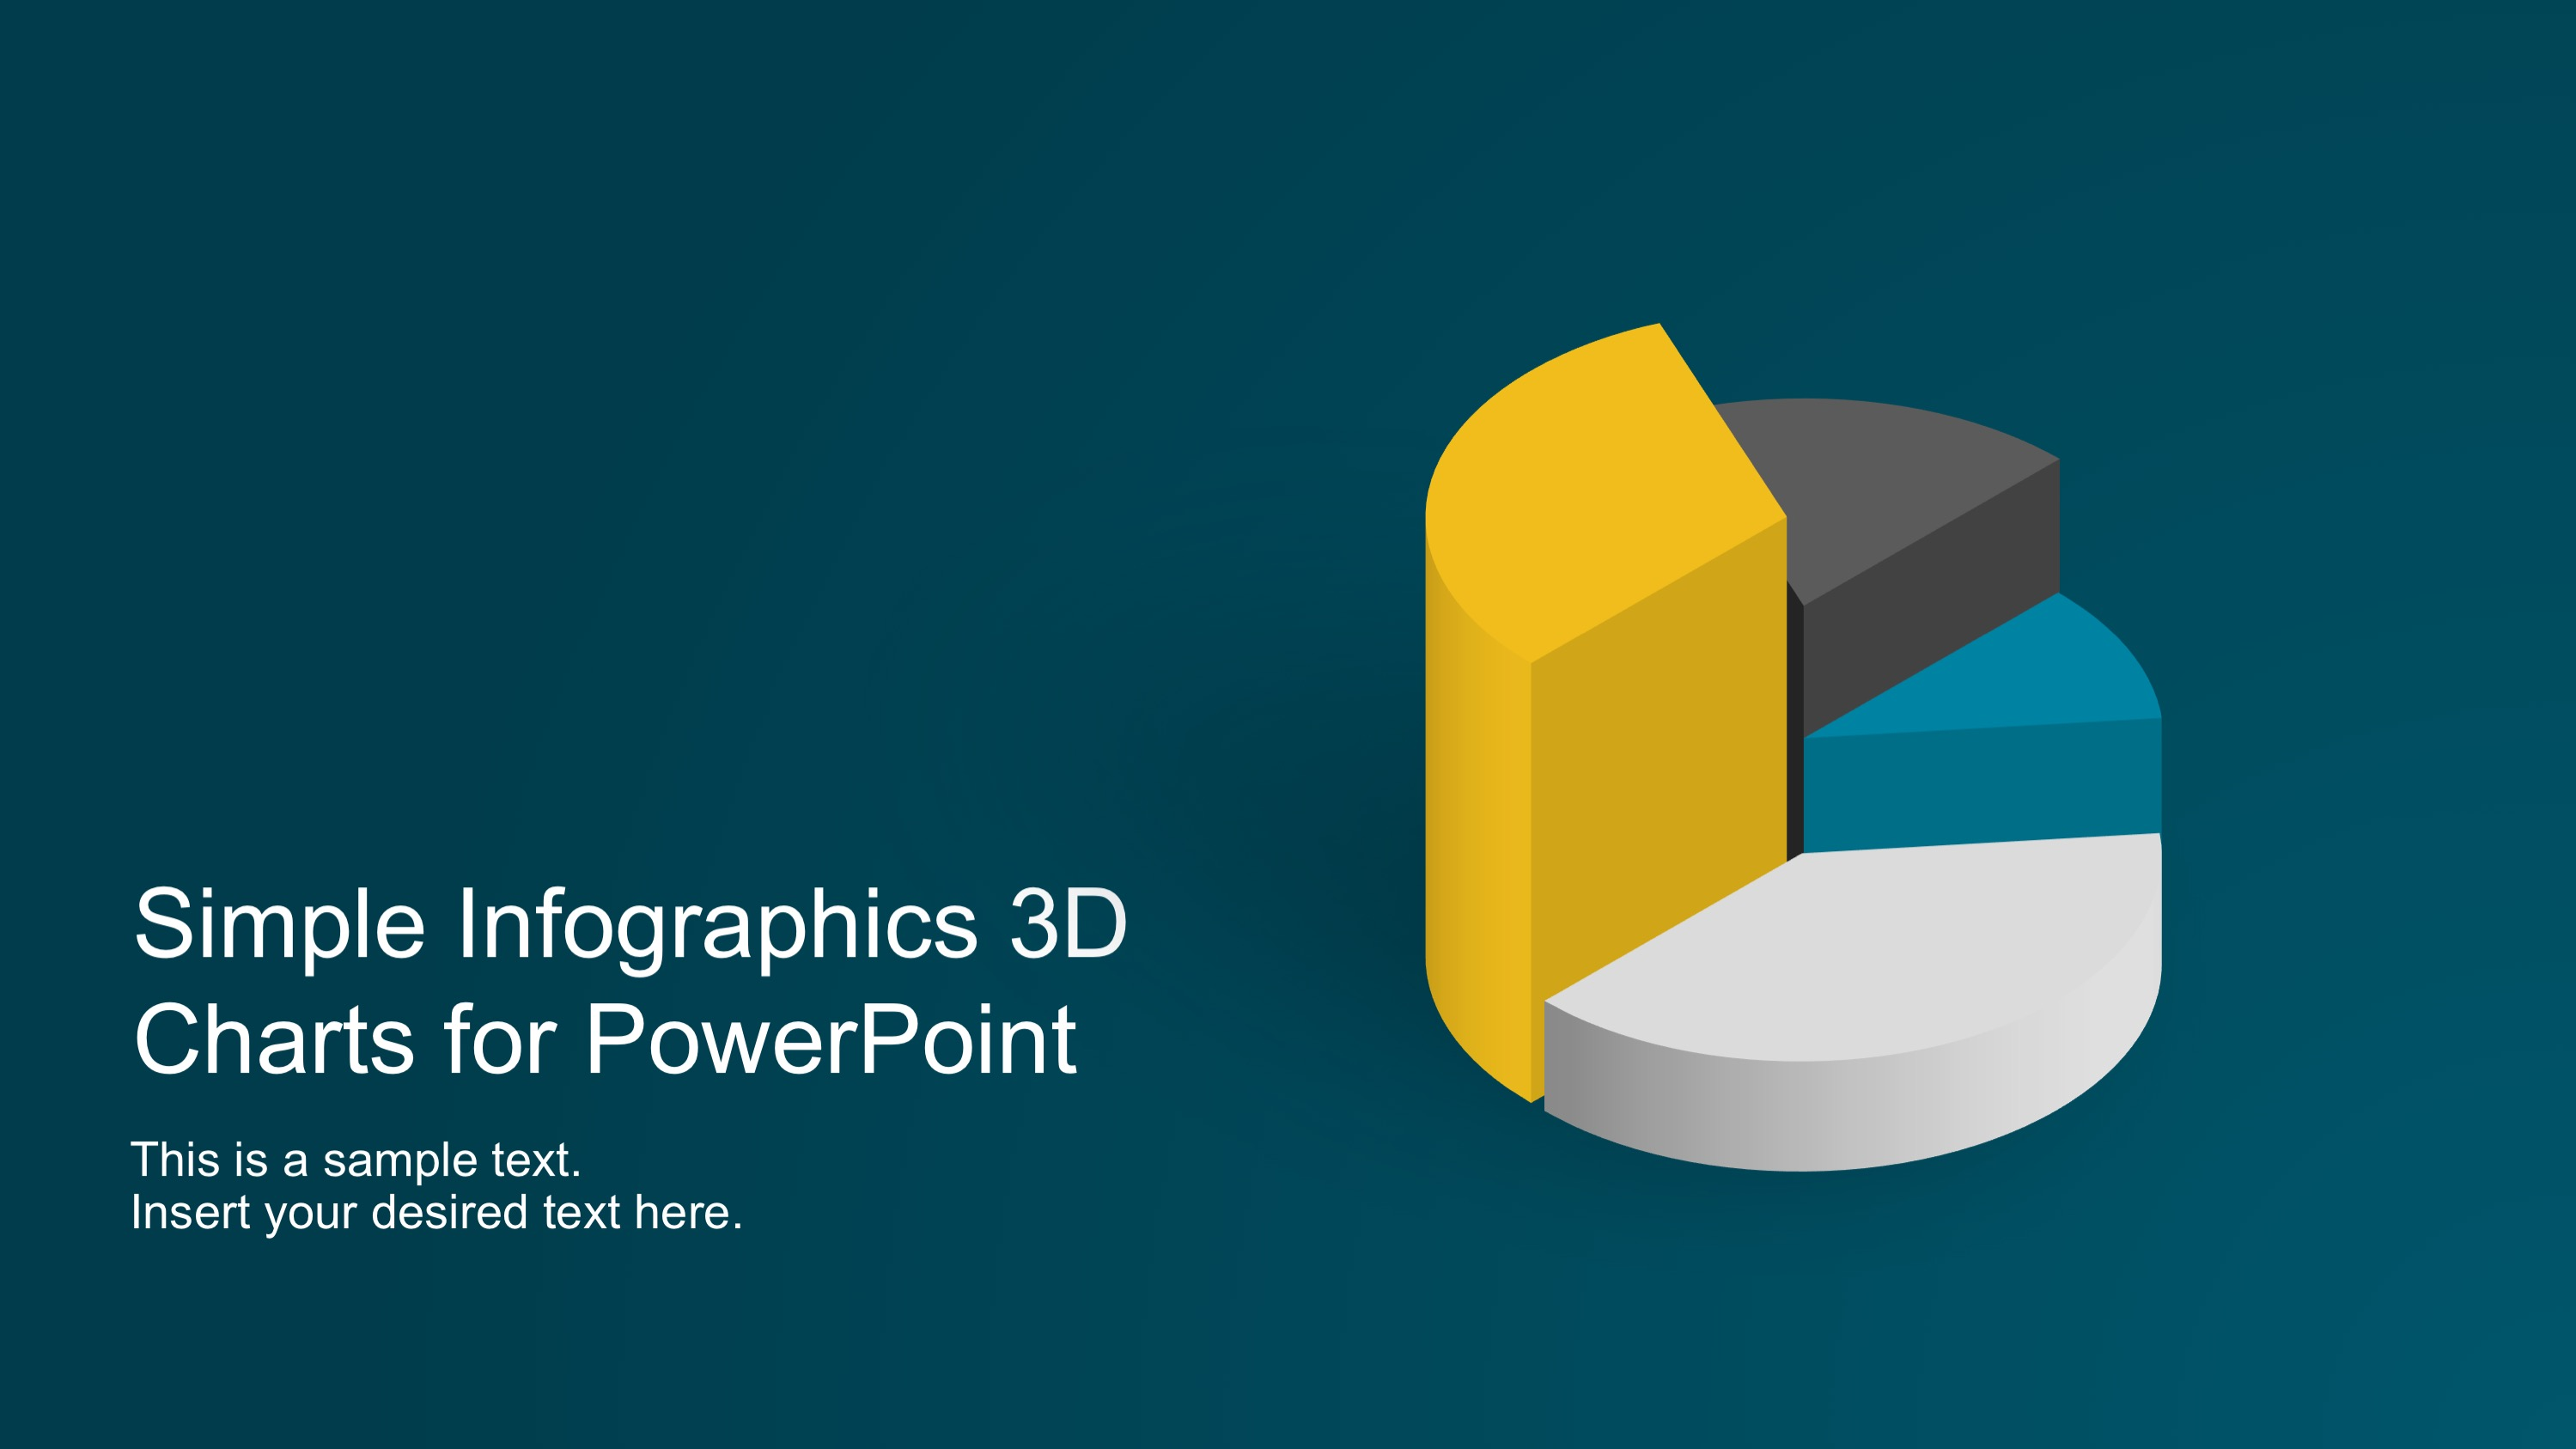 PPT Charts in 3D for Infographics Banners